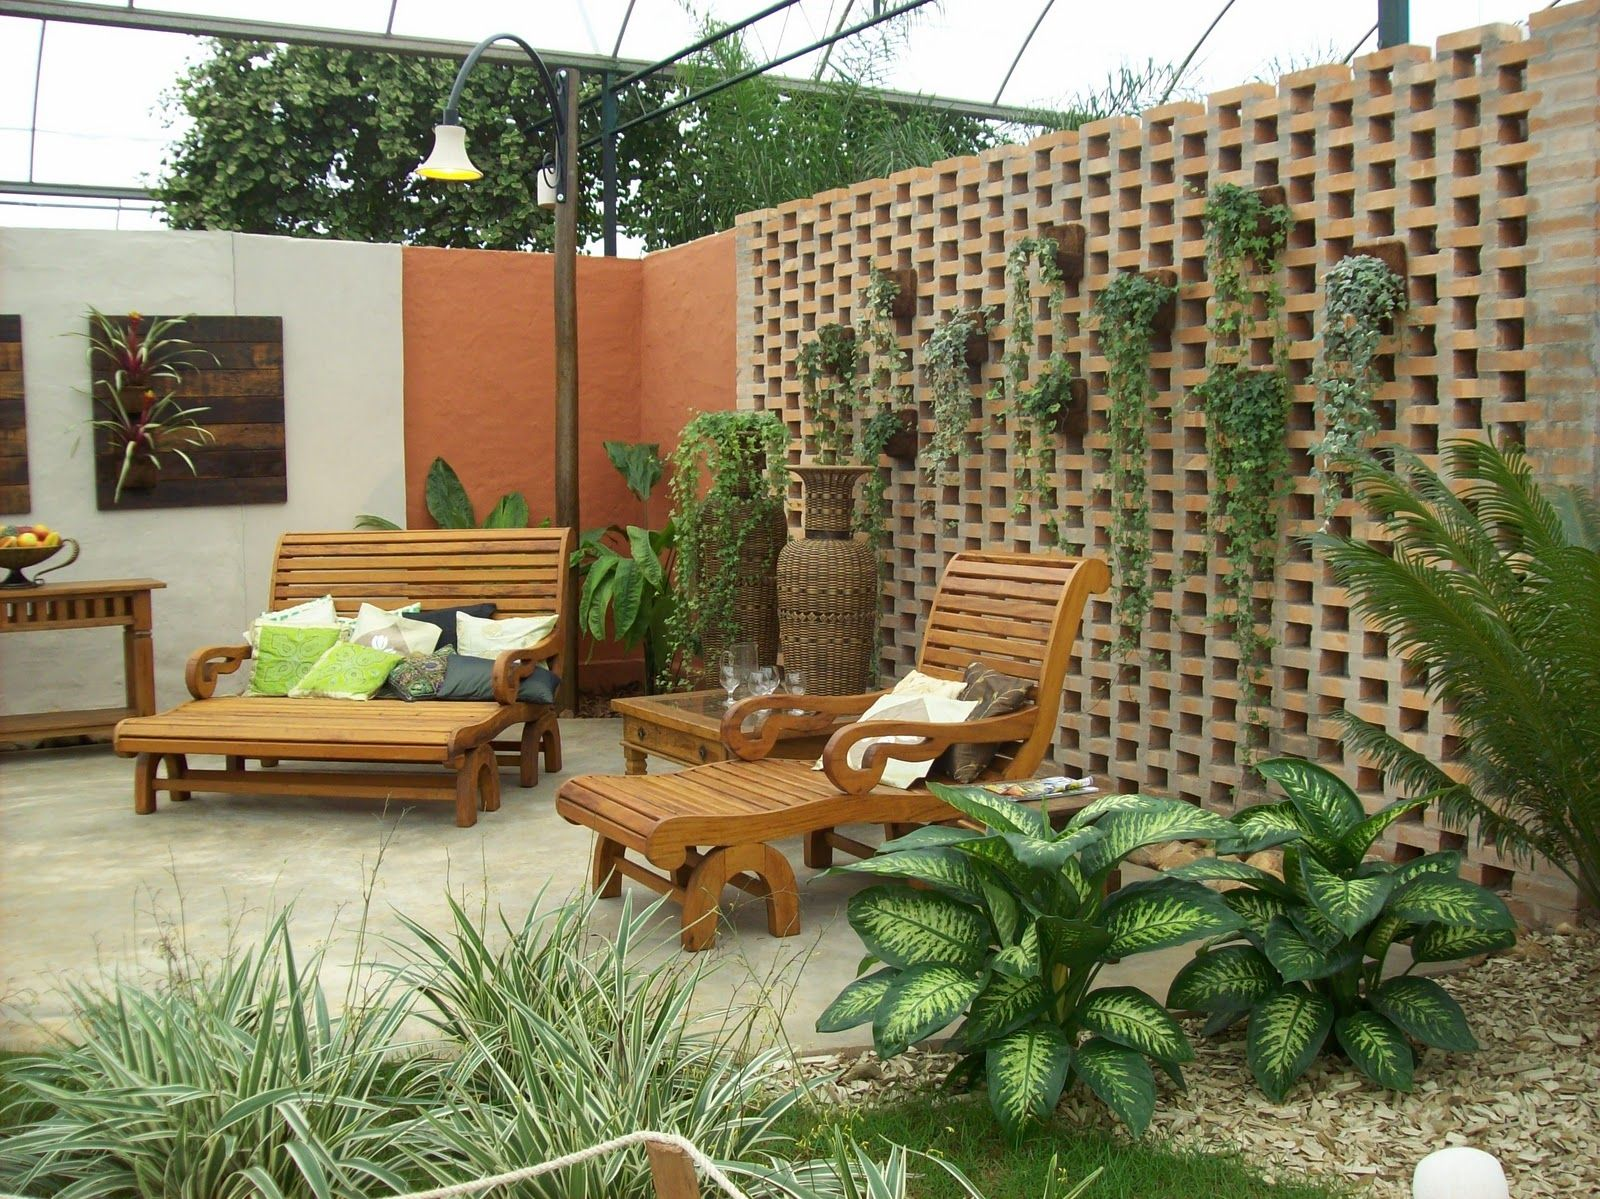 Jardins jardinagem ideas de decoracion pinterest - Jardines exteriores pequenos ...